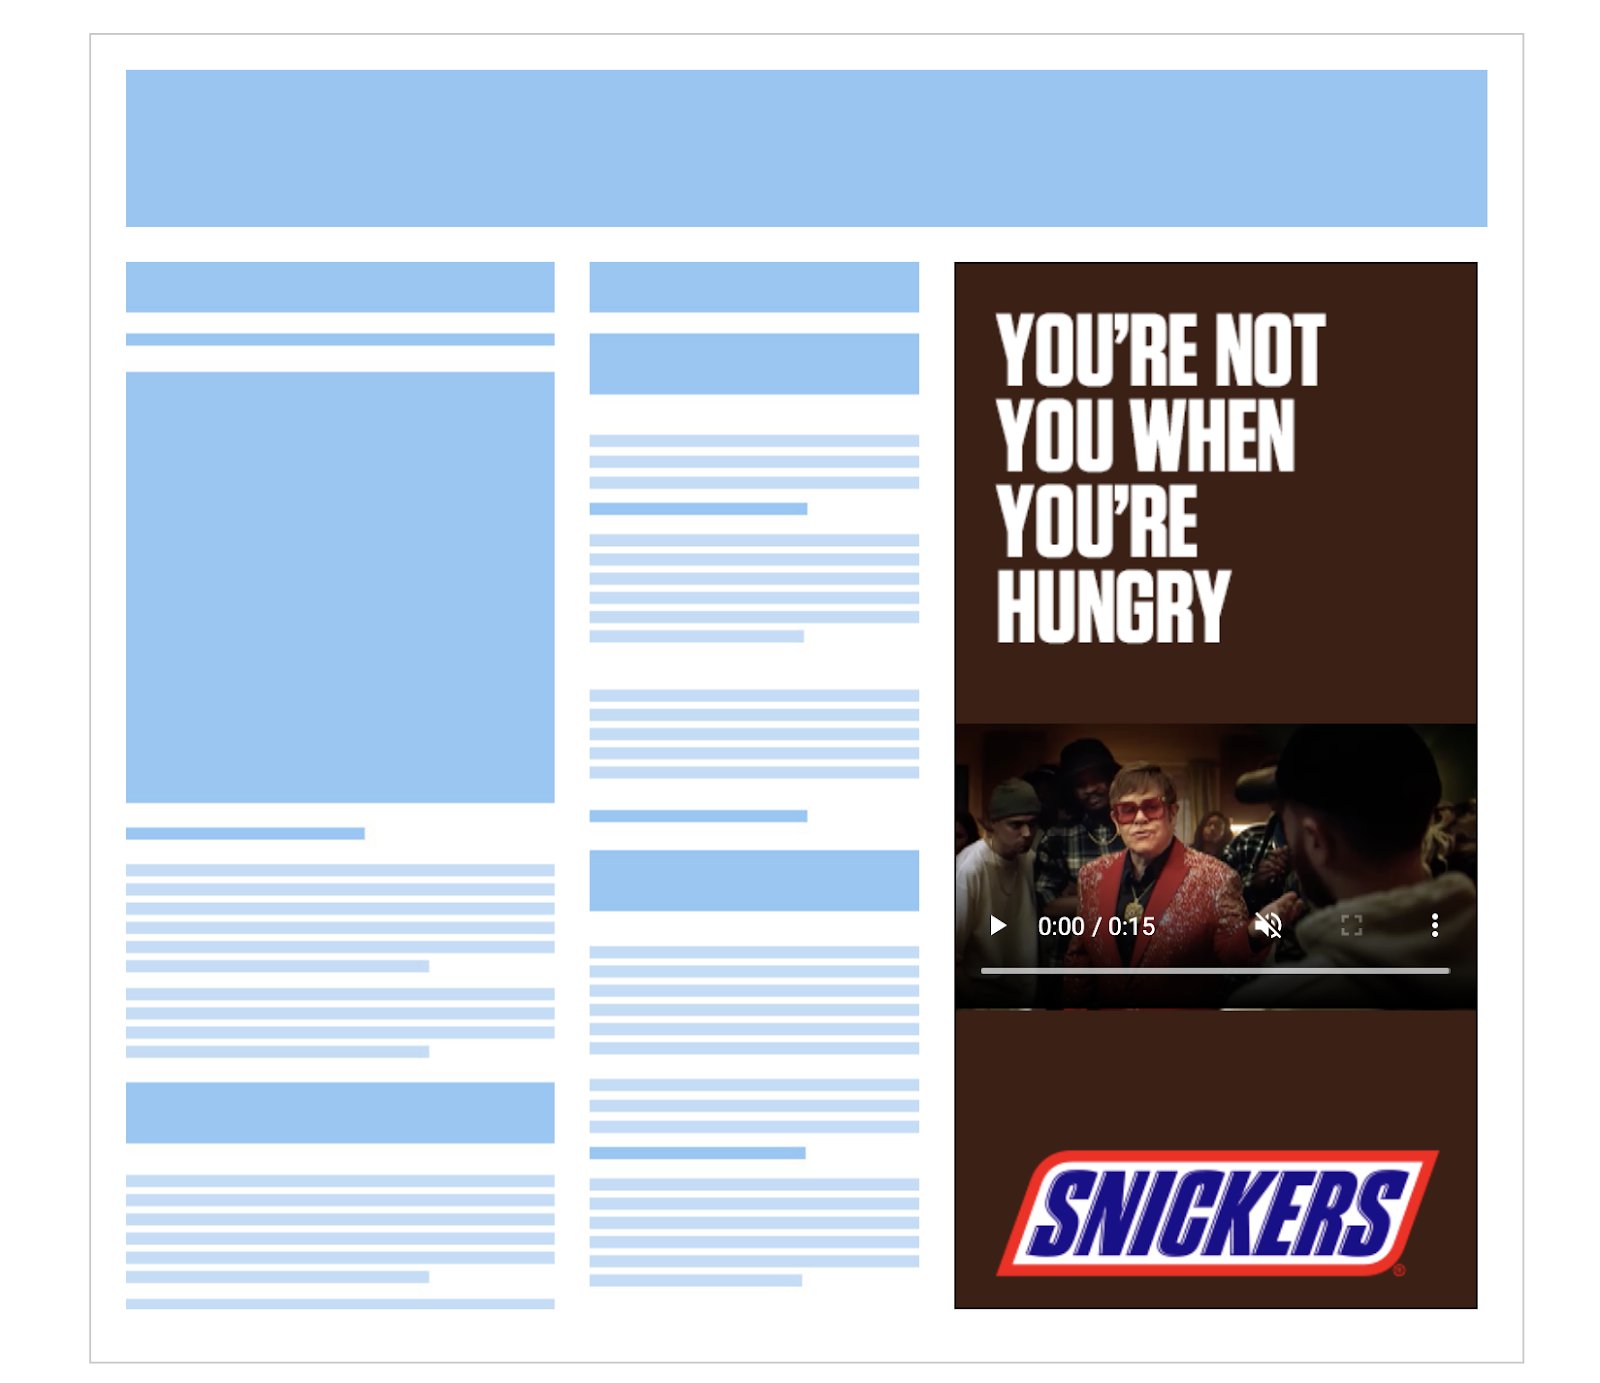 Snickers Rich Media Video Ad